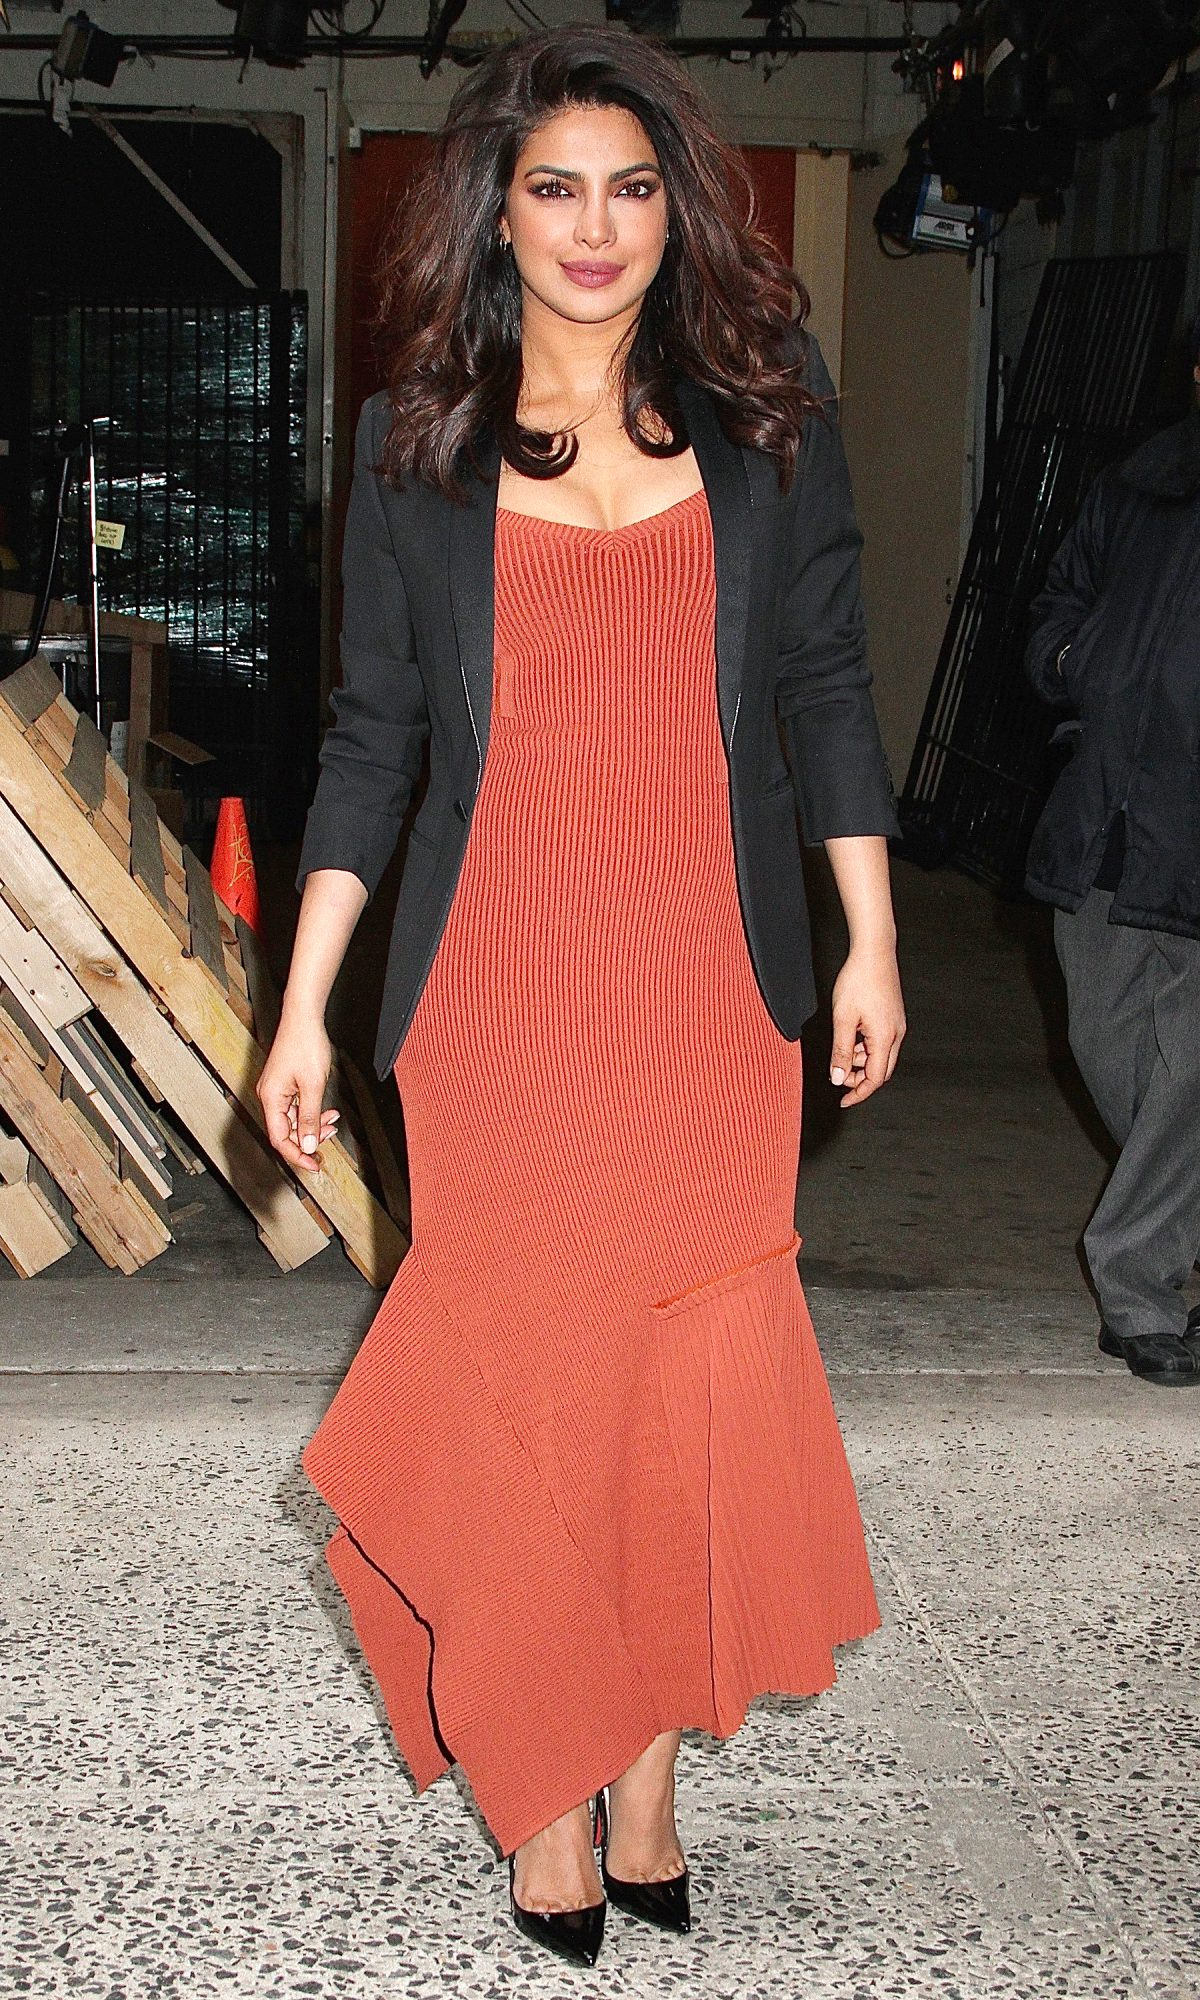 Indian actress Priyanka Chopra spotted leaving 'Live with Kelly' in NYC